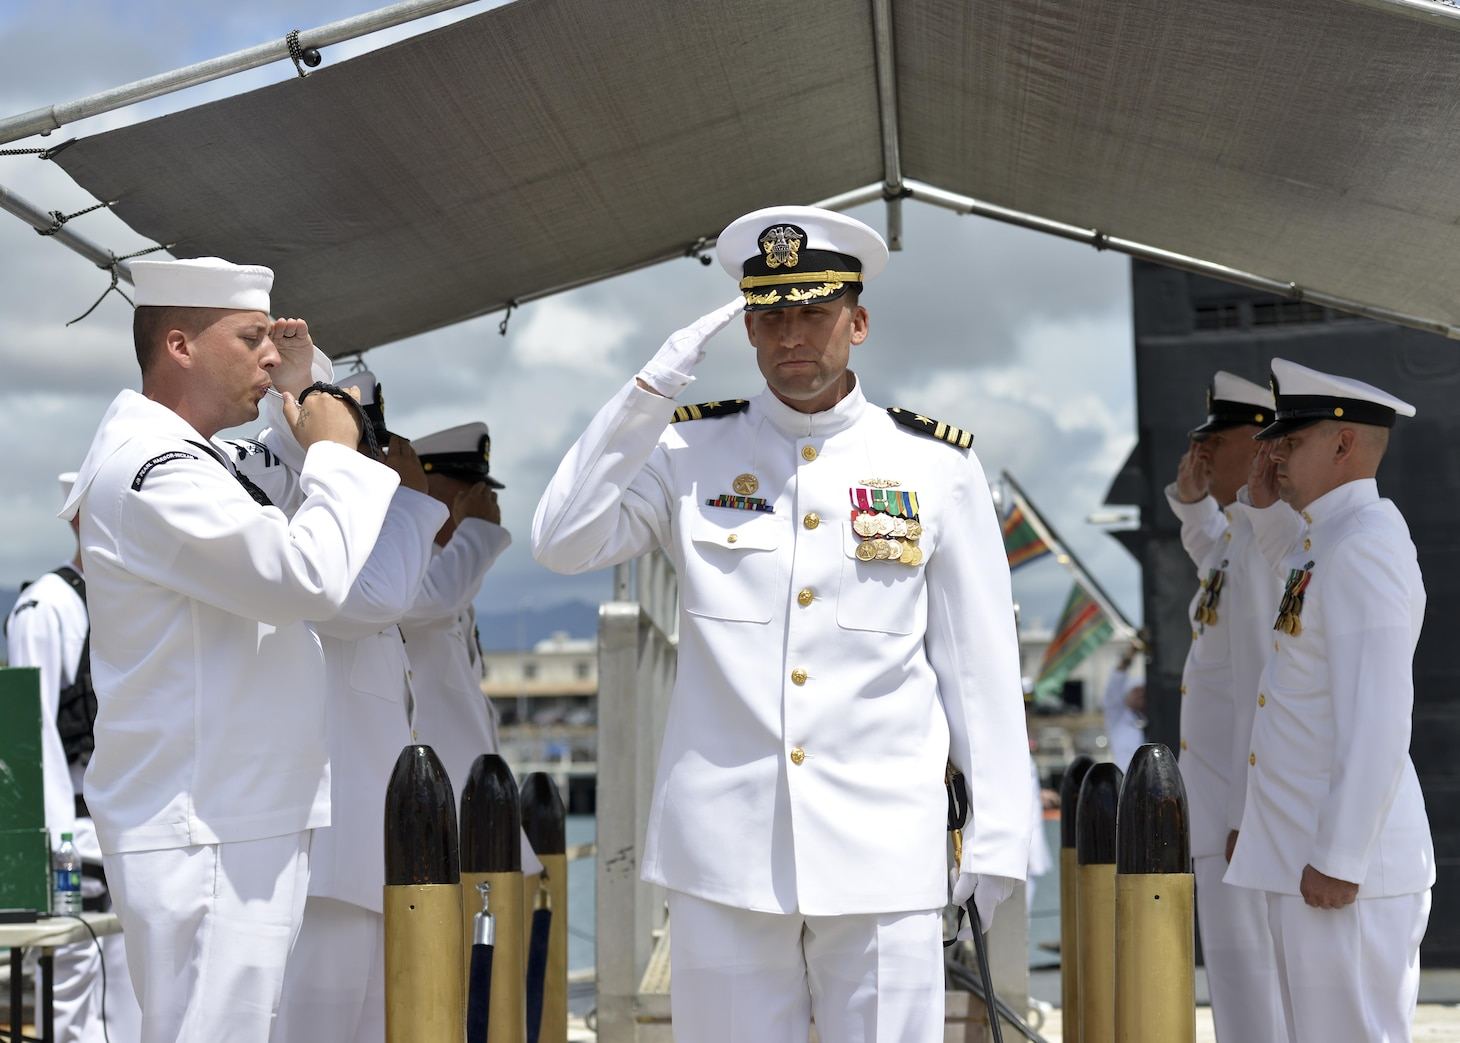 160525-N-LY160-246 JOINT BASE PEARL HARBOR-HICKAM, Hawaii (May 25, 2016) Commander Benjamin J. Selph, commanding officer, Los Angeles-class fast-attack submarine USS Olympia (SSN 717), salutes sideboys during a change-of-command ceremony in Joint Base Pearl Harbor-Hickam. (U.S. Navy photo by Mass Communication Specialist 2nd Class Michael H. Lee)